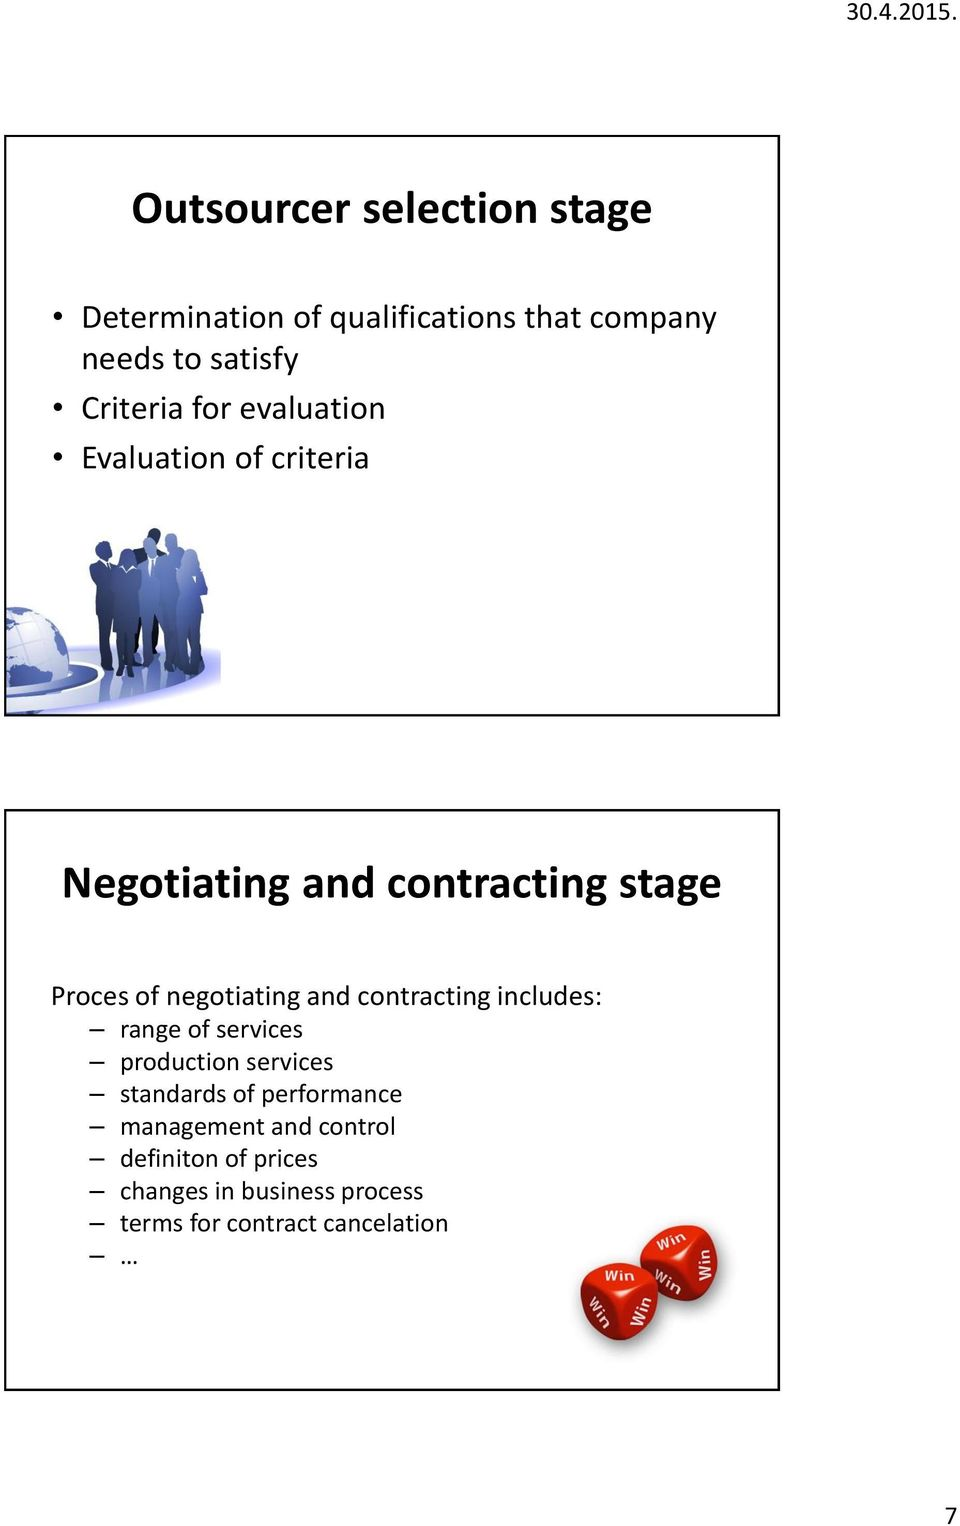 negotiating and contracting includes: range of services production services standards of